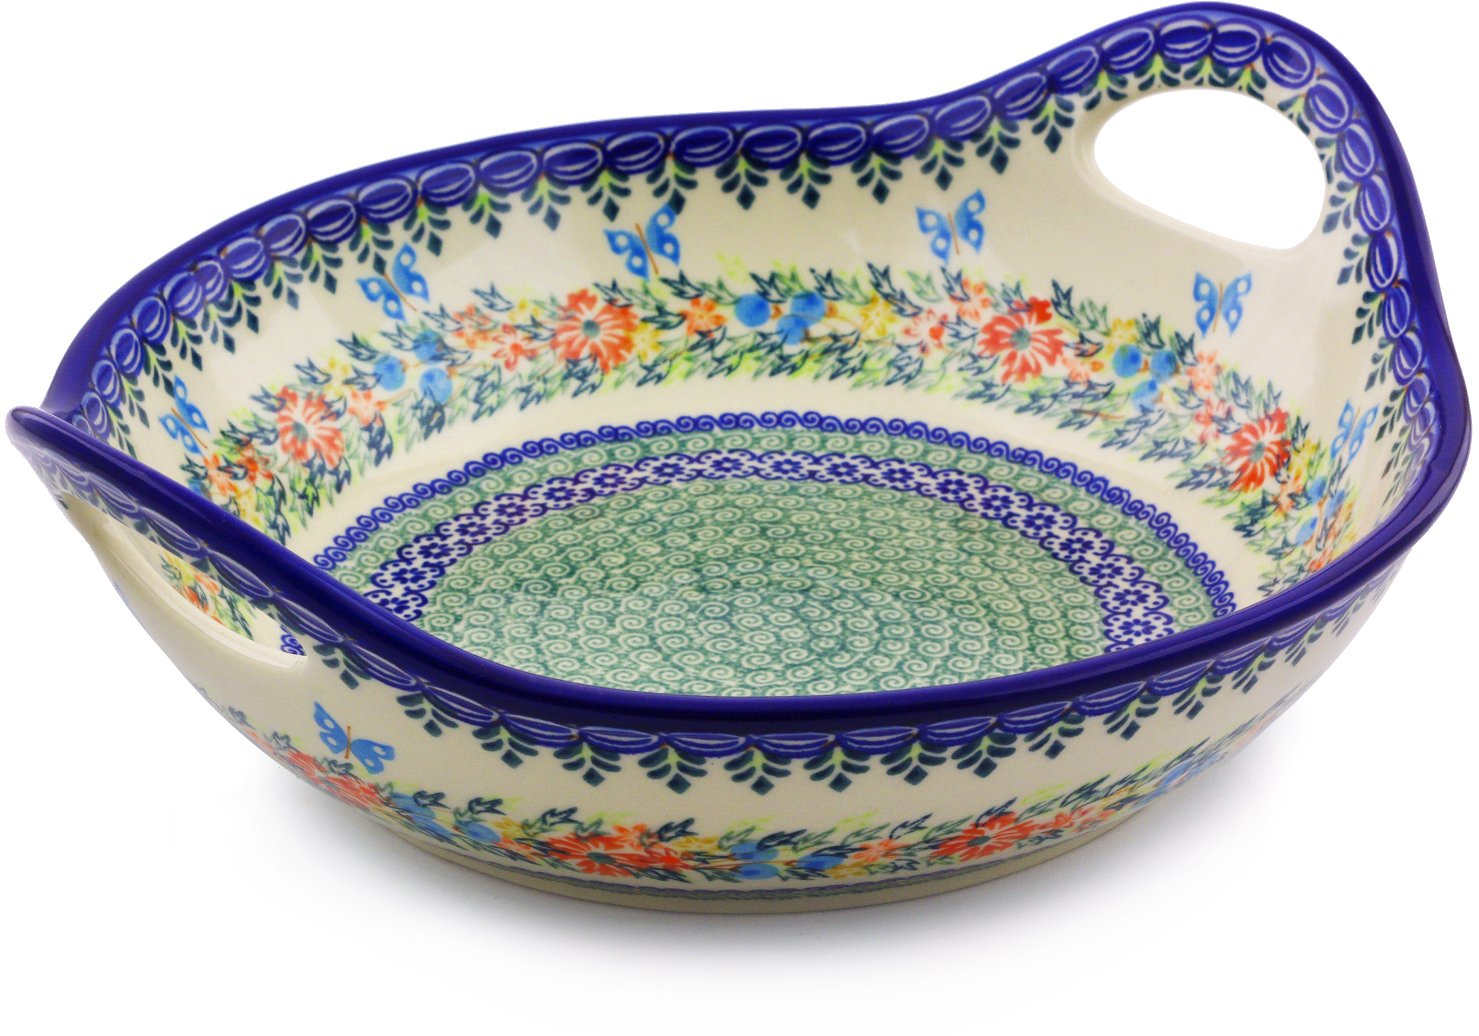 Polish Pottery 11½-inch Bowl with Handles (Red Cornflower And Blue Butterflies Theme) Signature UNIKAT + Certificate of Authenticity by Polmedia Polish Pottery